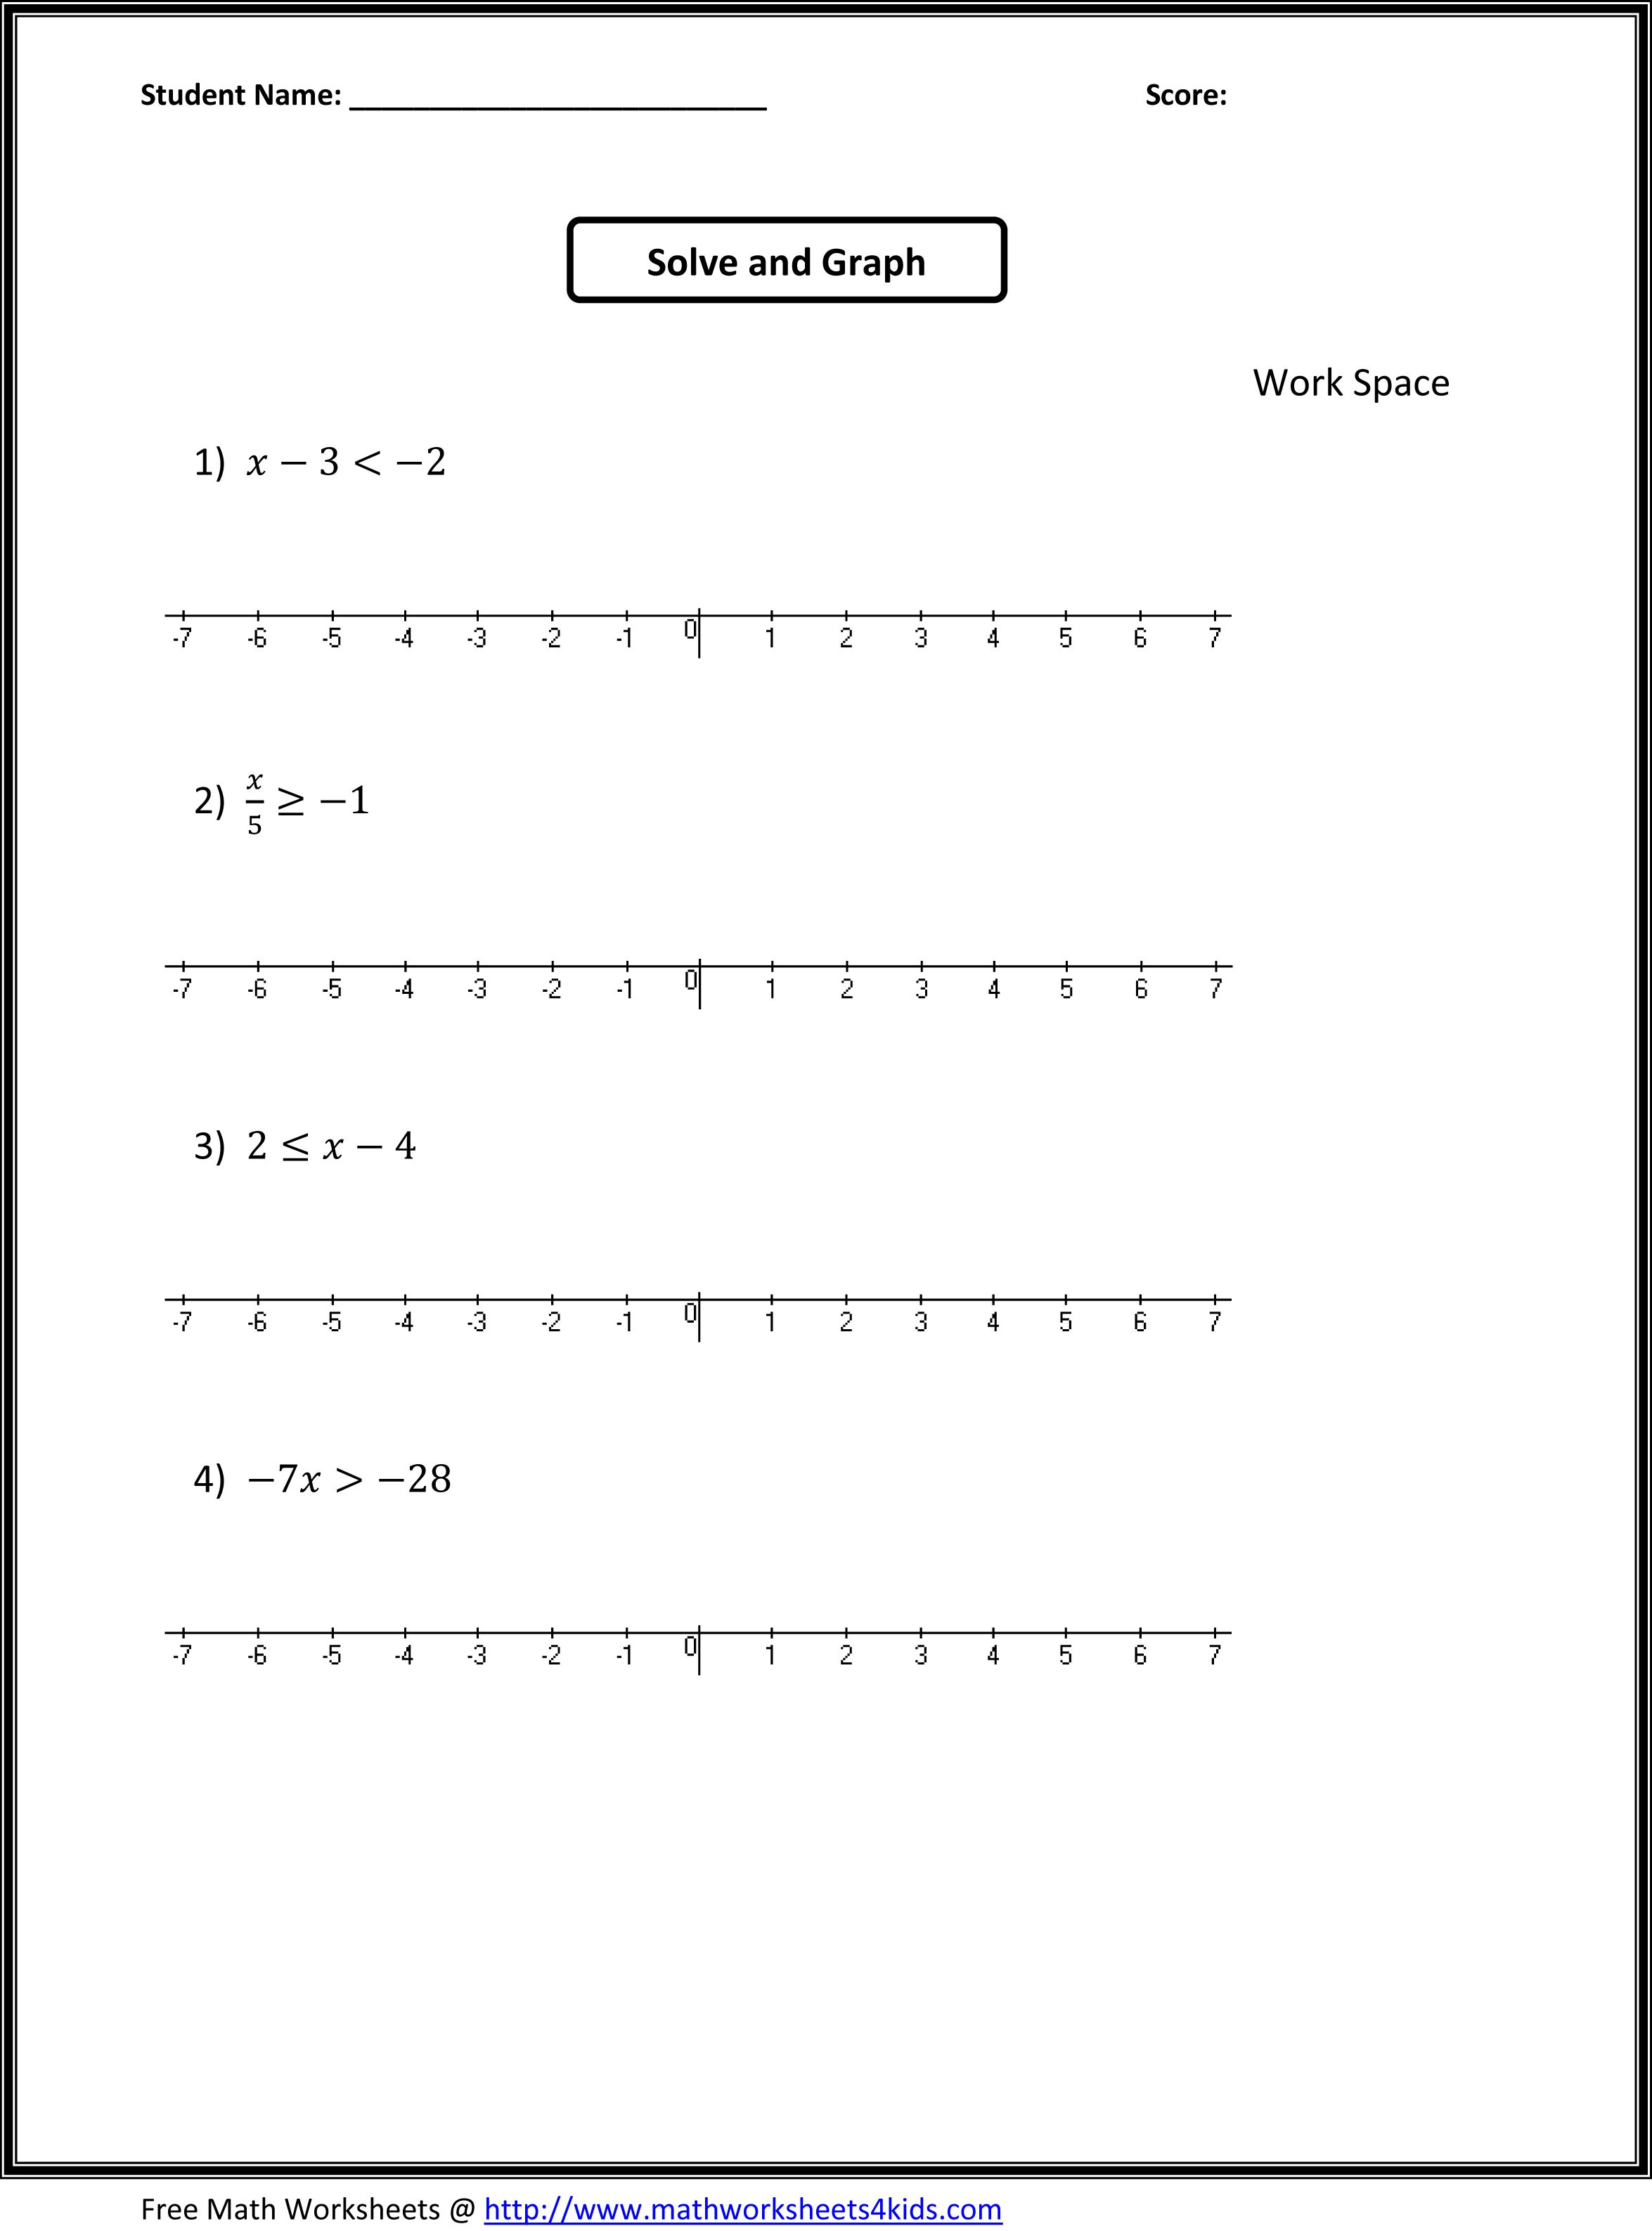 Printables Math Problems For 7th Graders Worksheets 7th grade math worksheets value absolute algebra worksheets